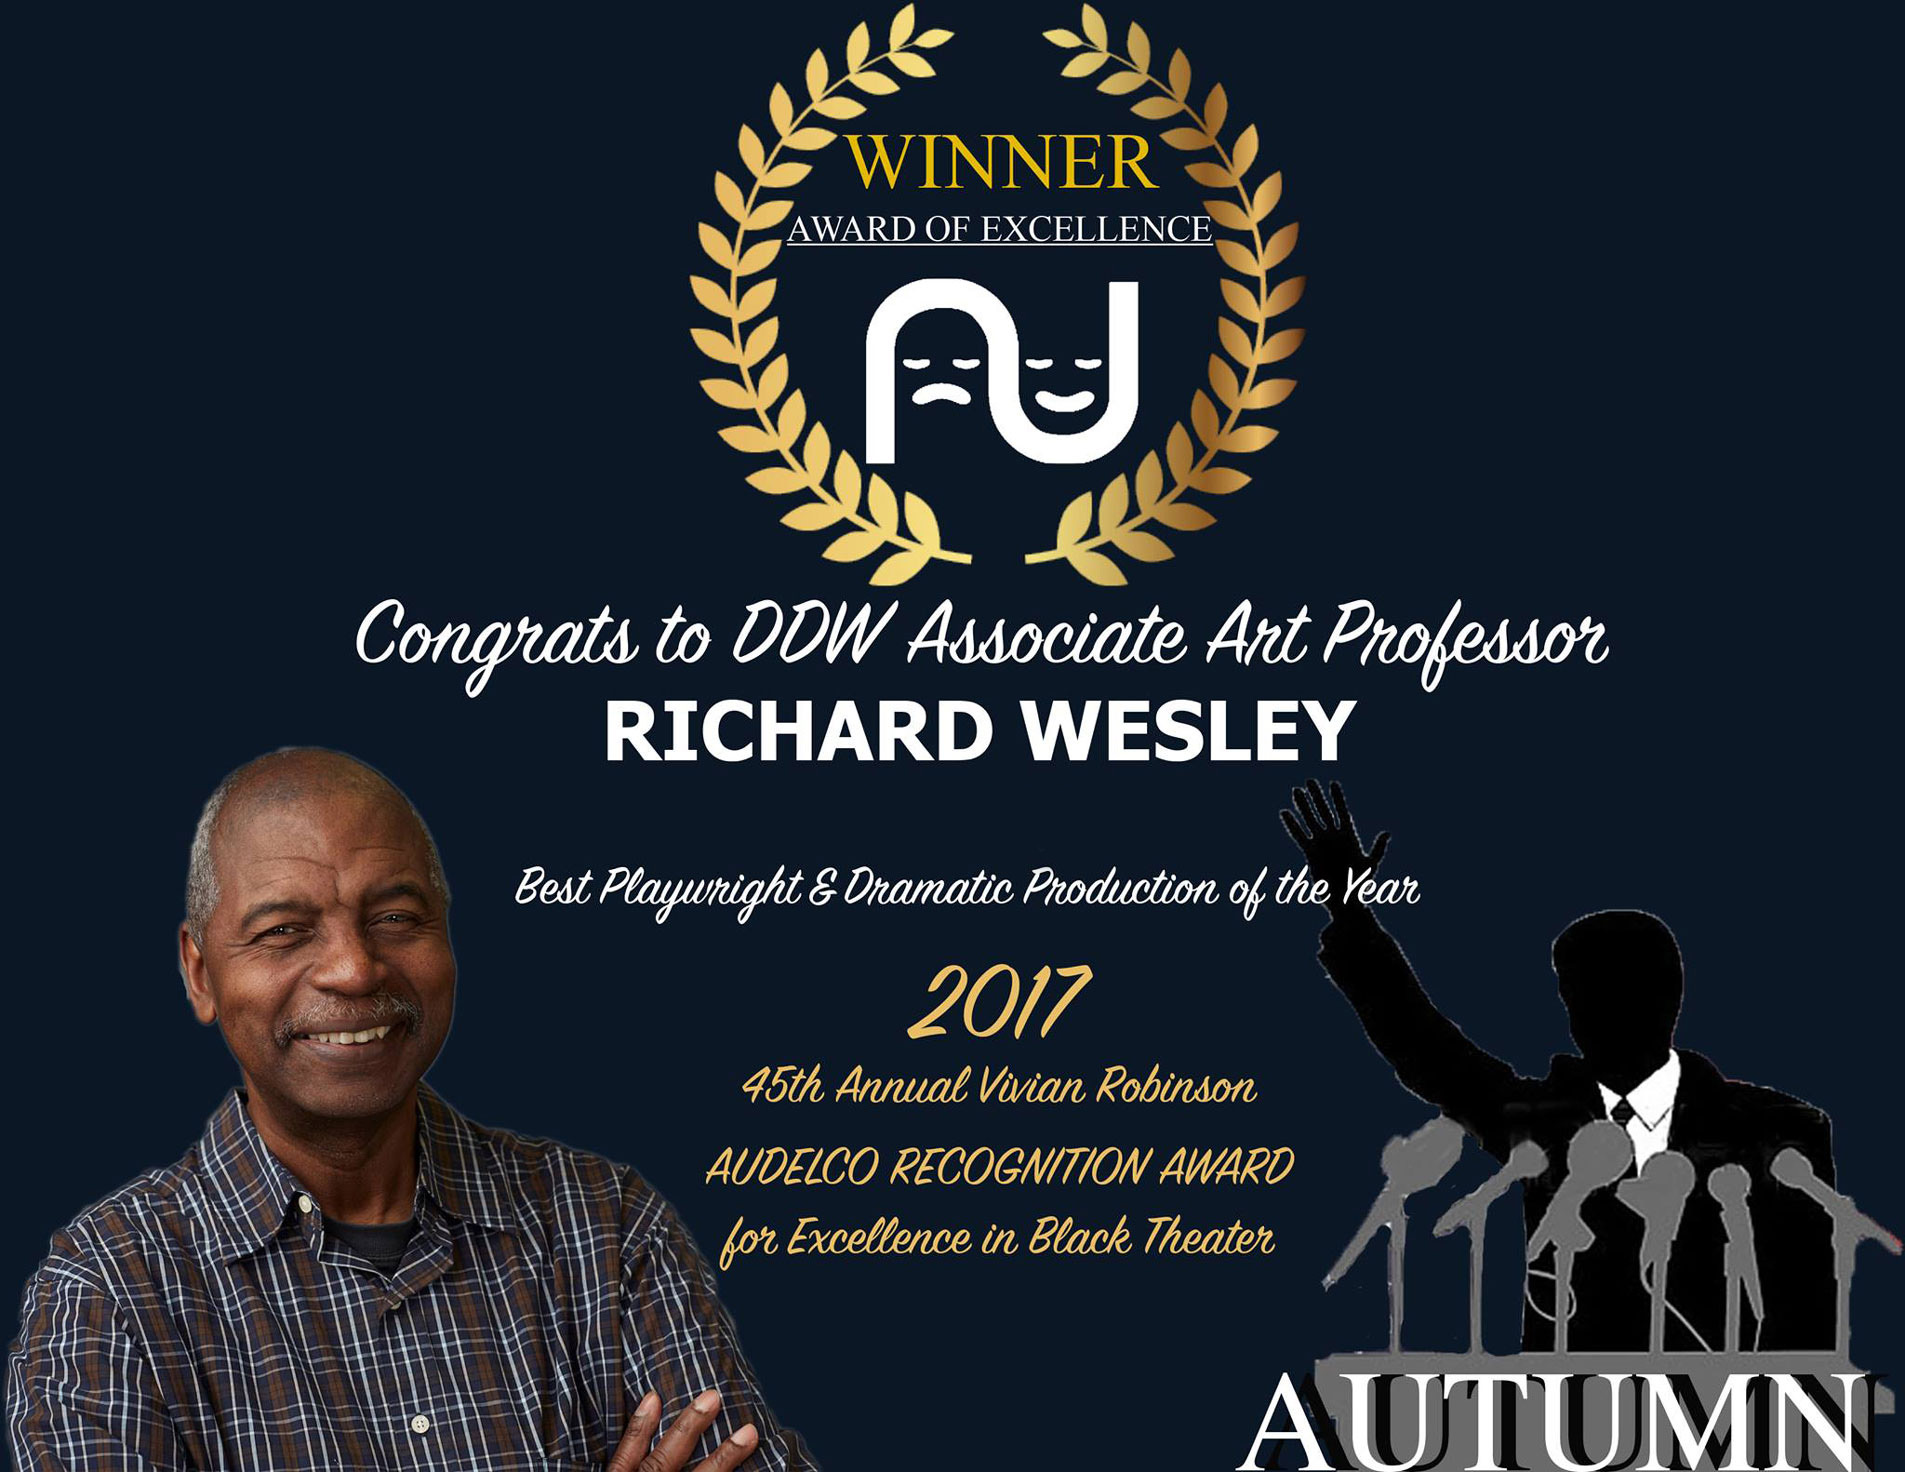 Richard Wesley